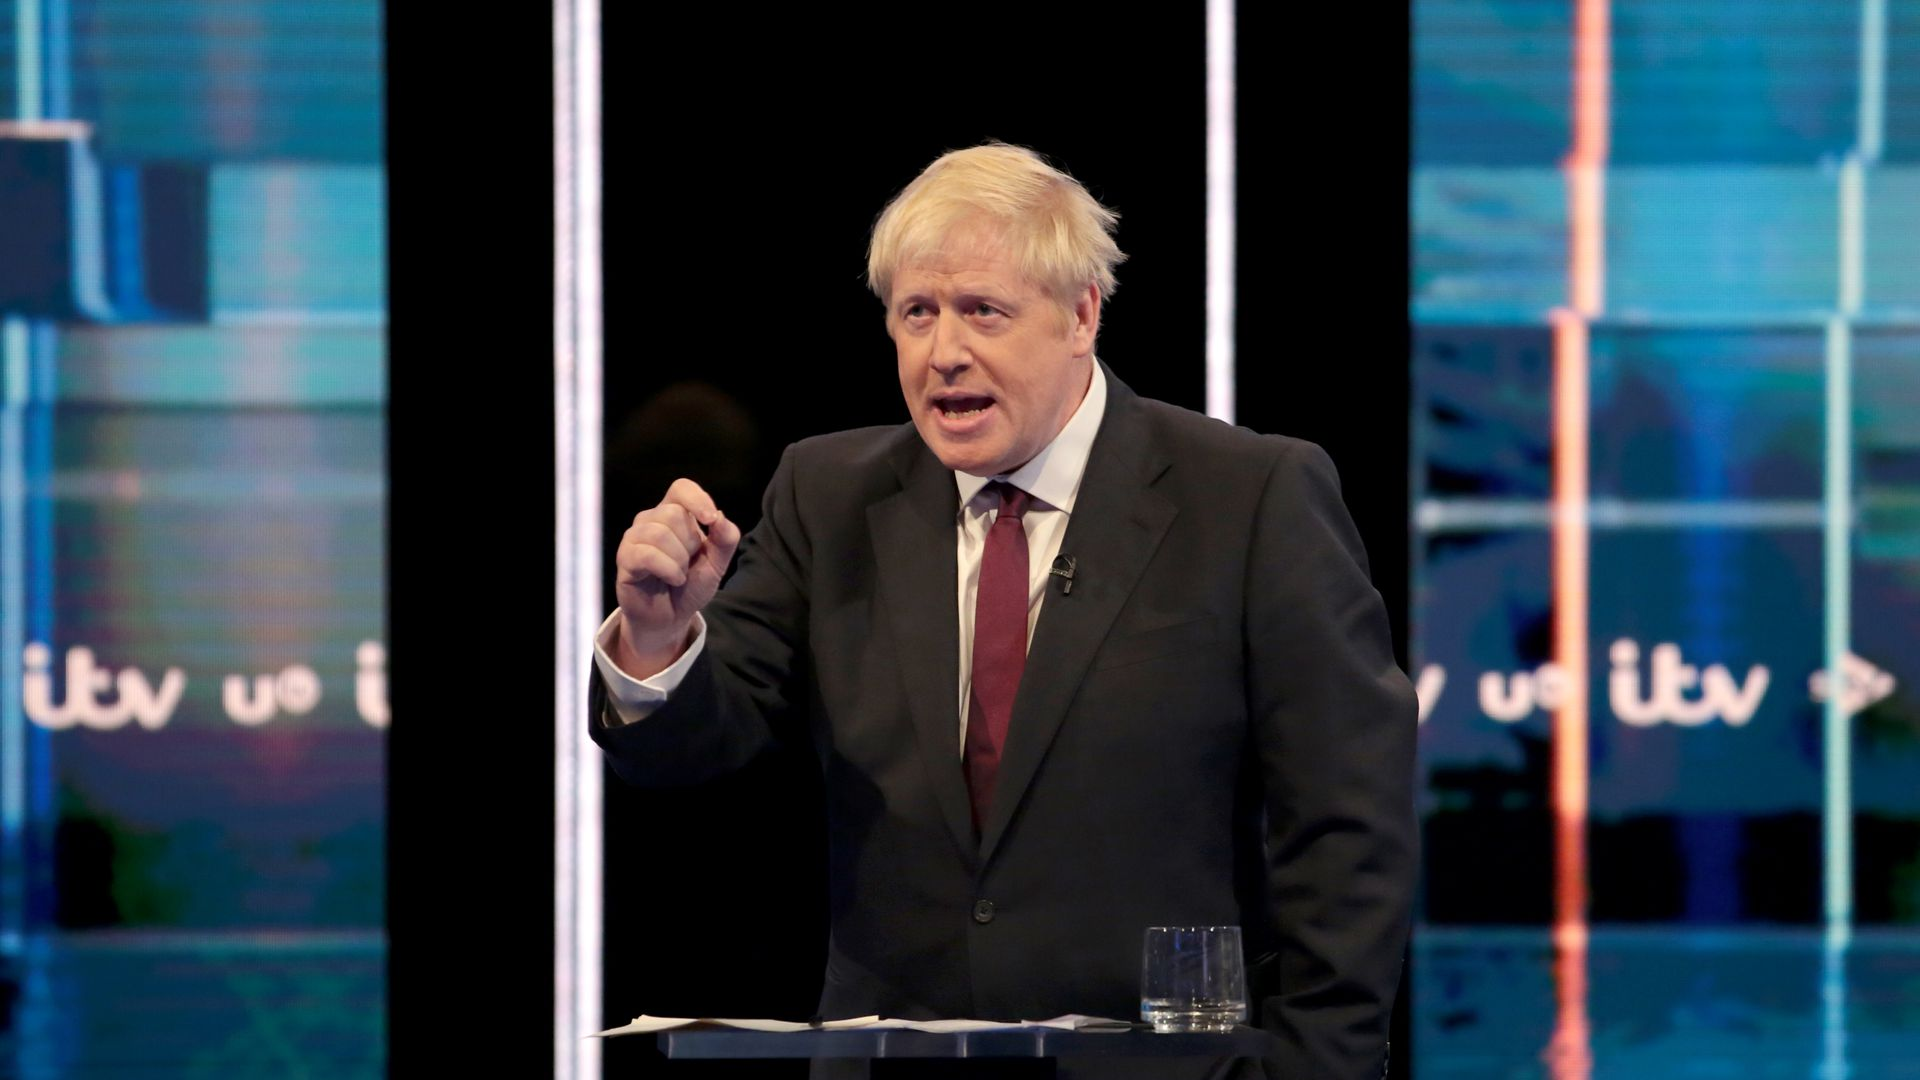 Boris Johnson takes part in the Jeremy Hunt and Boris Johnson debate Head To Head on ITV on July 9.